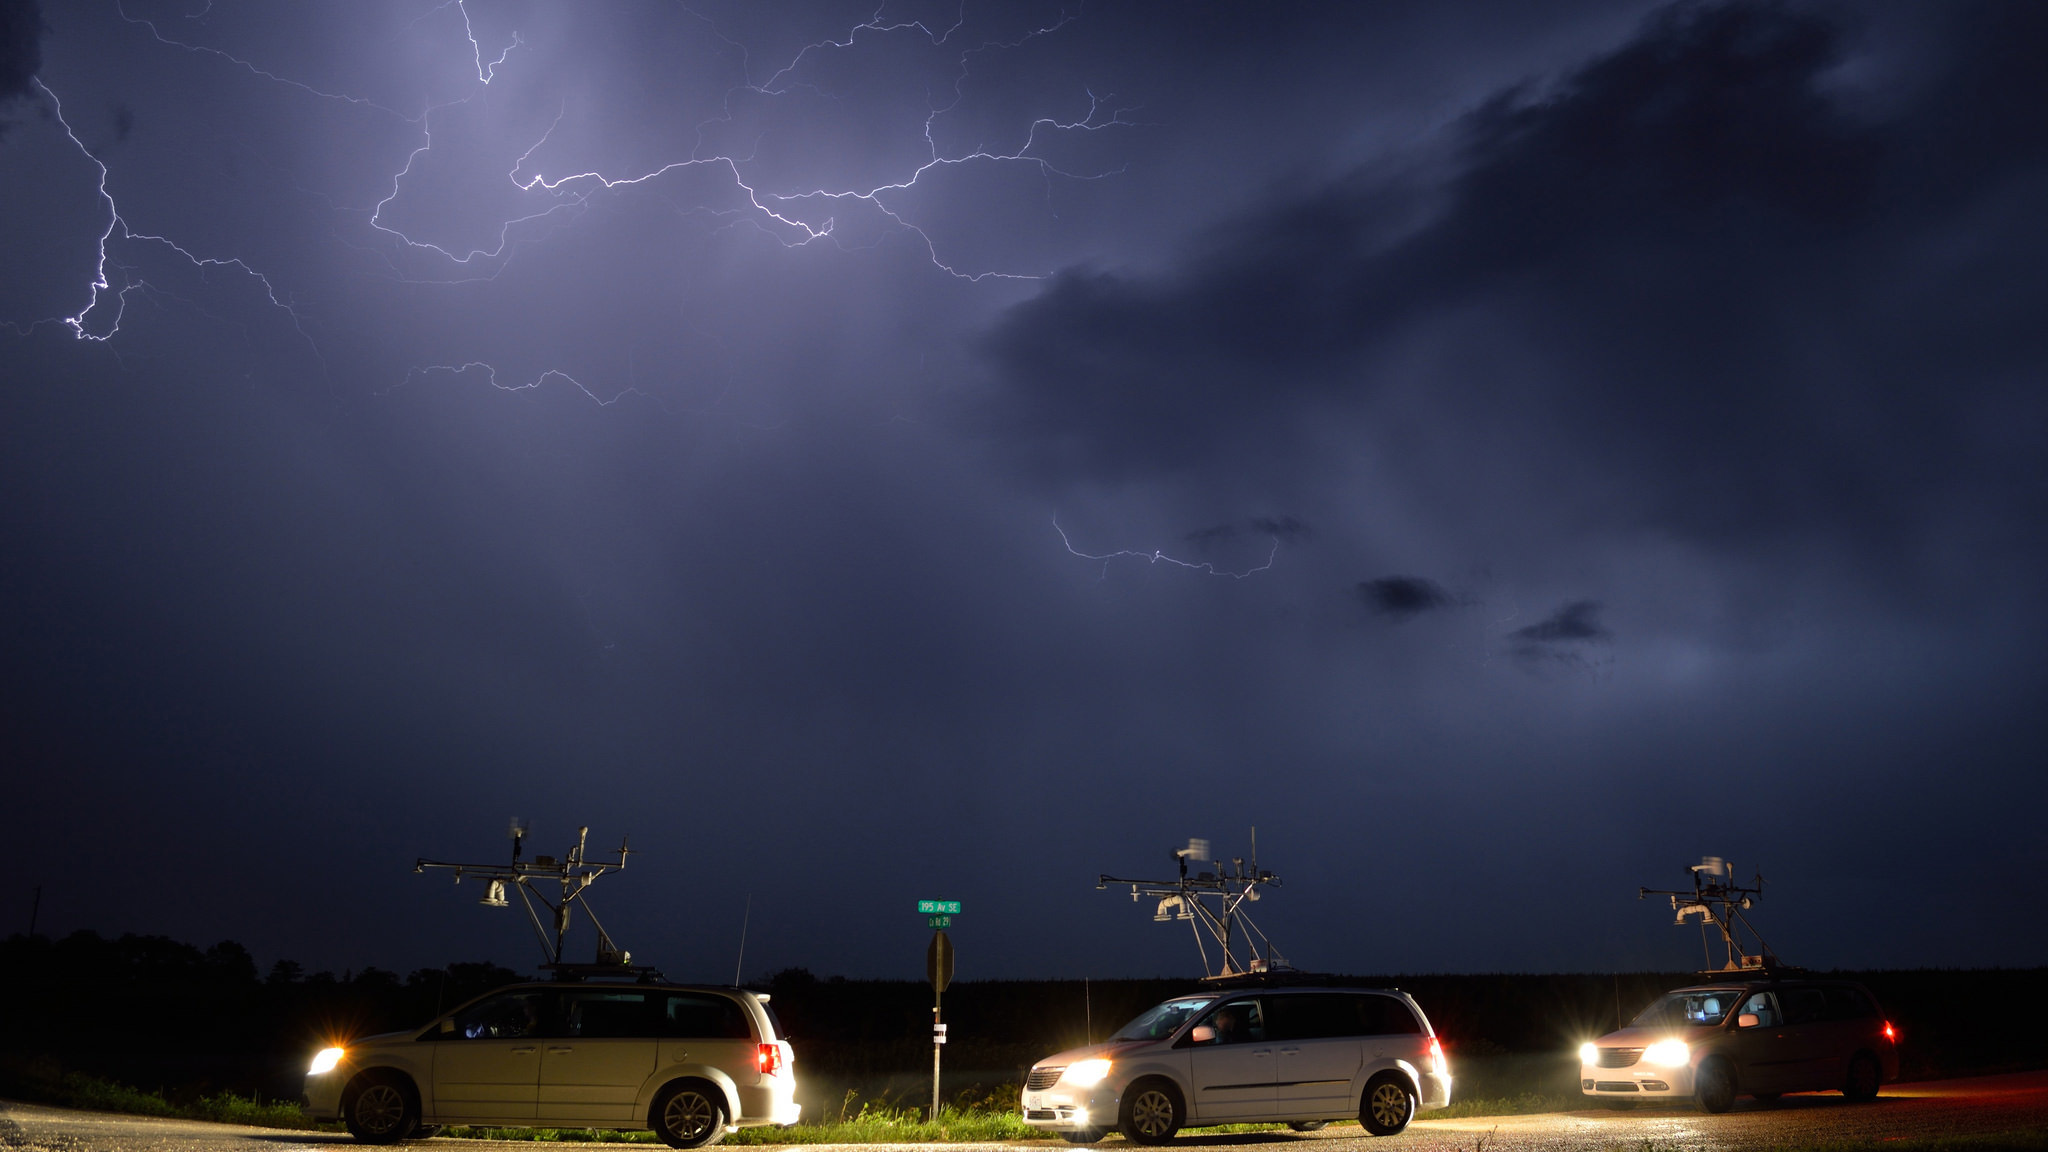 Research vans are silhouetted against a night sky streaked with lightning